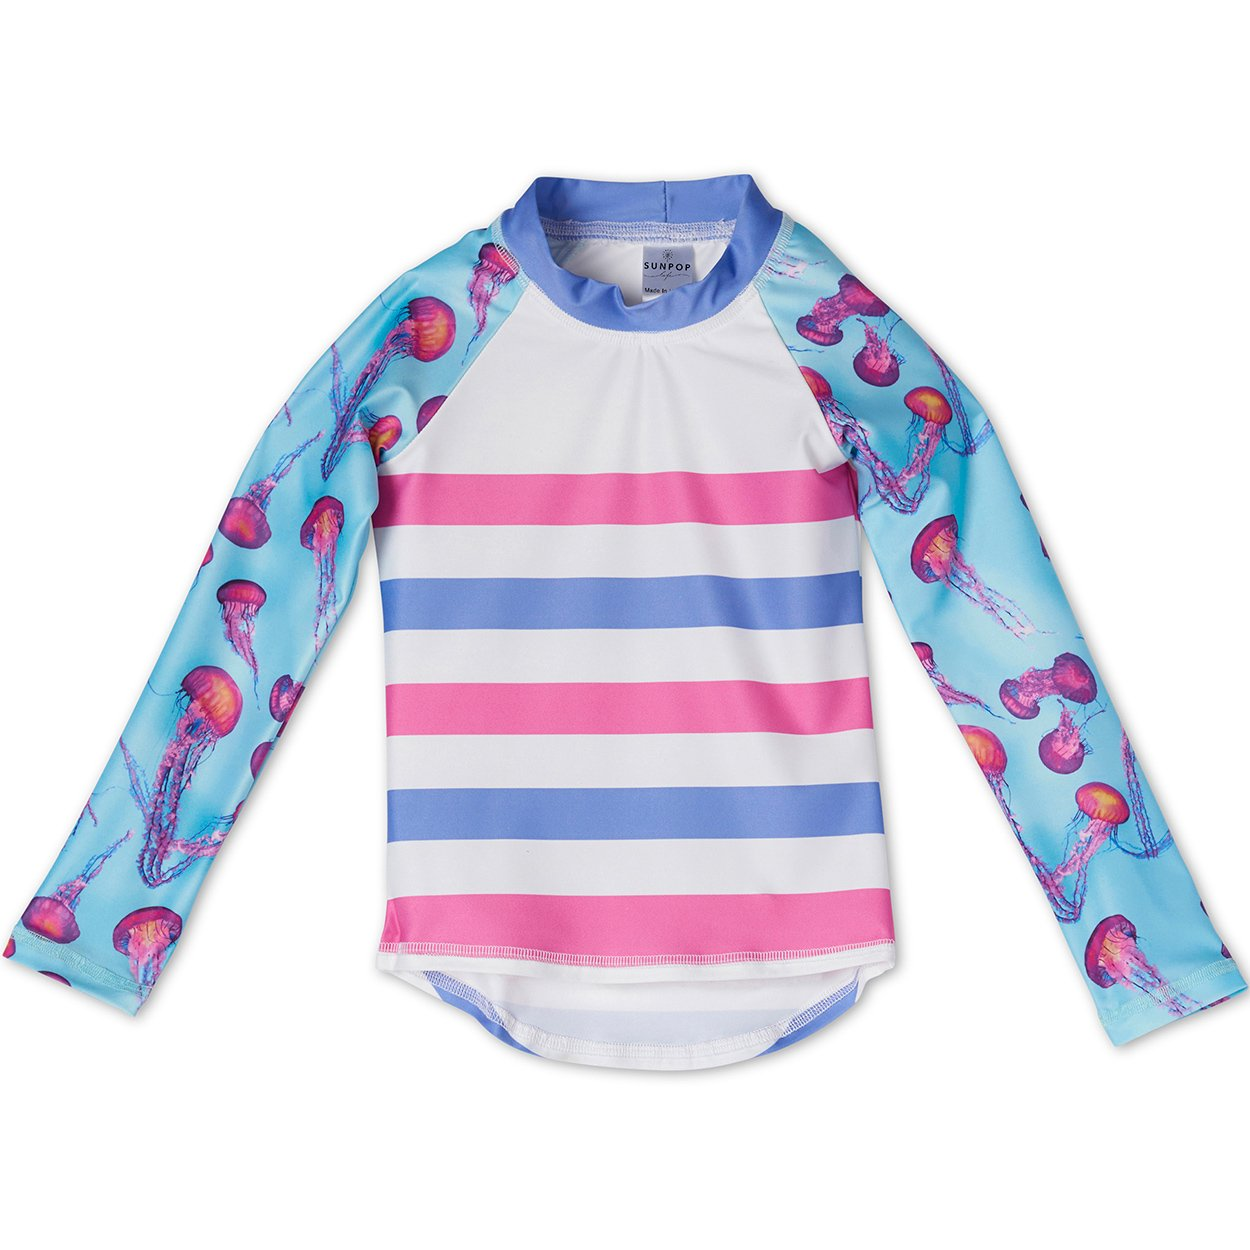 Pink Jellyfish Rash Guard Top UPF 50+ for Girls